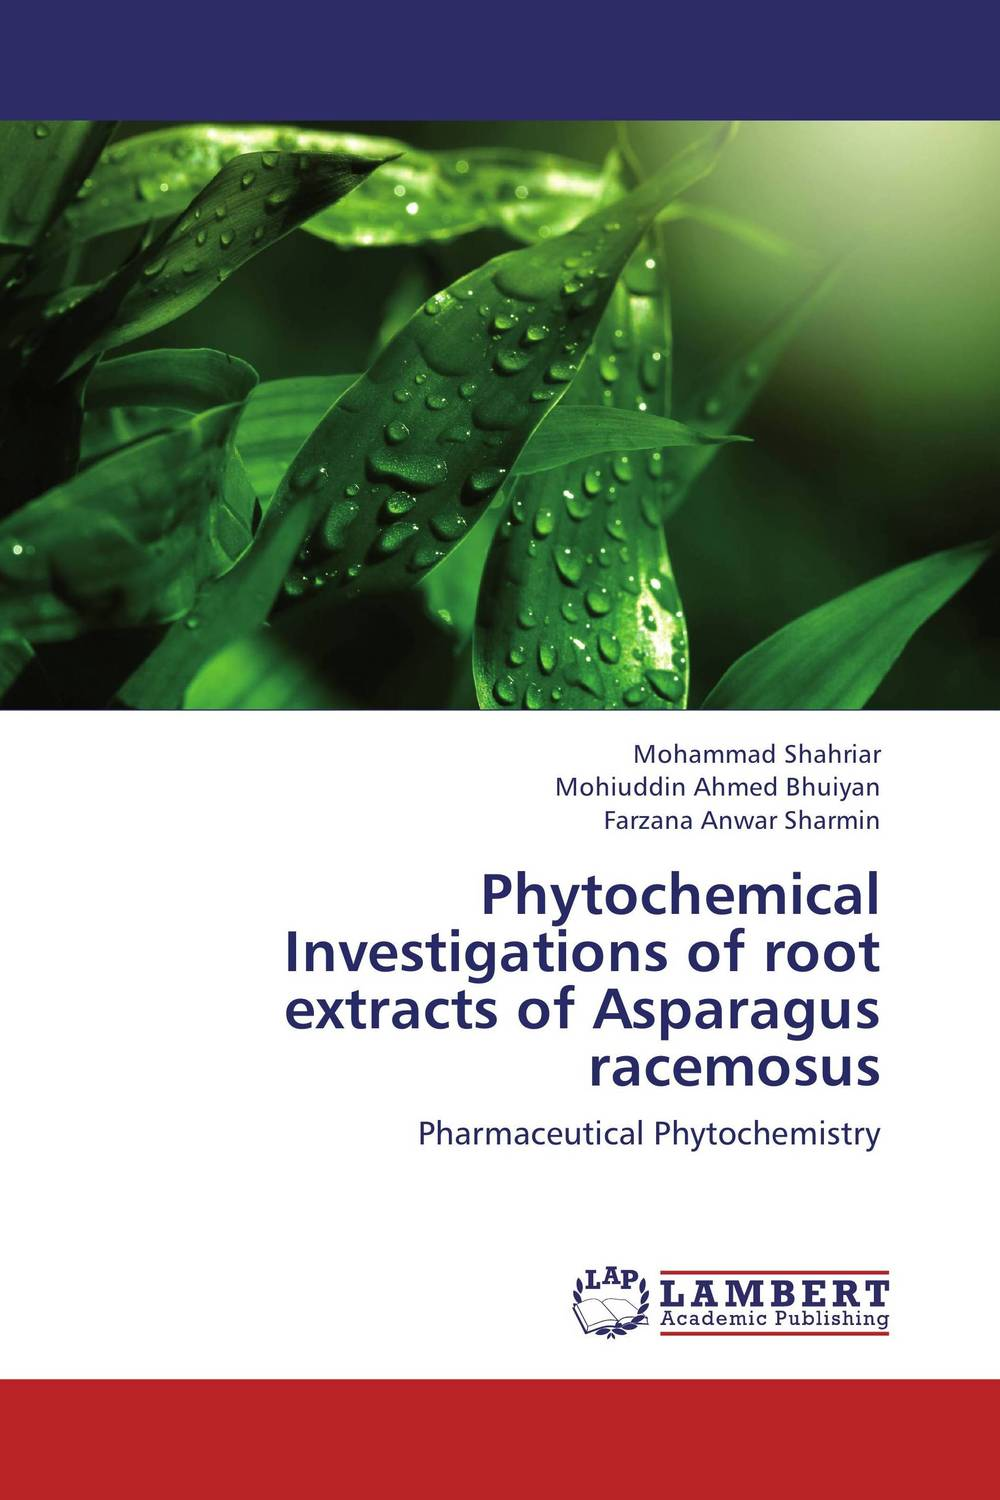 Phytochemical Investigations of root extracts of Asparagus racemosus in vitro activities of asparagus racemosus root extracts